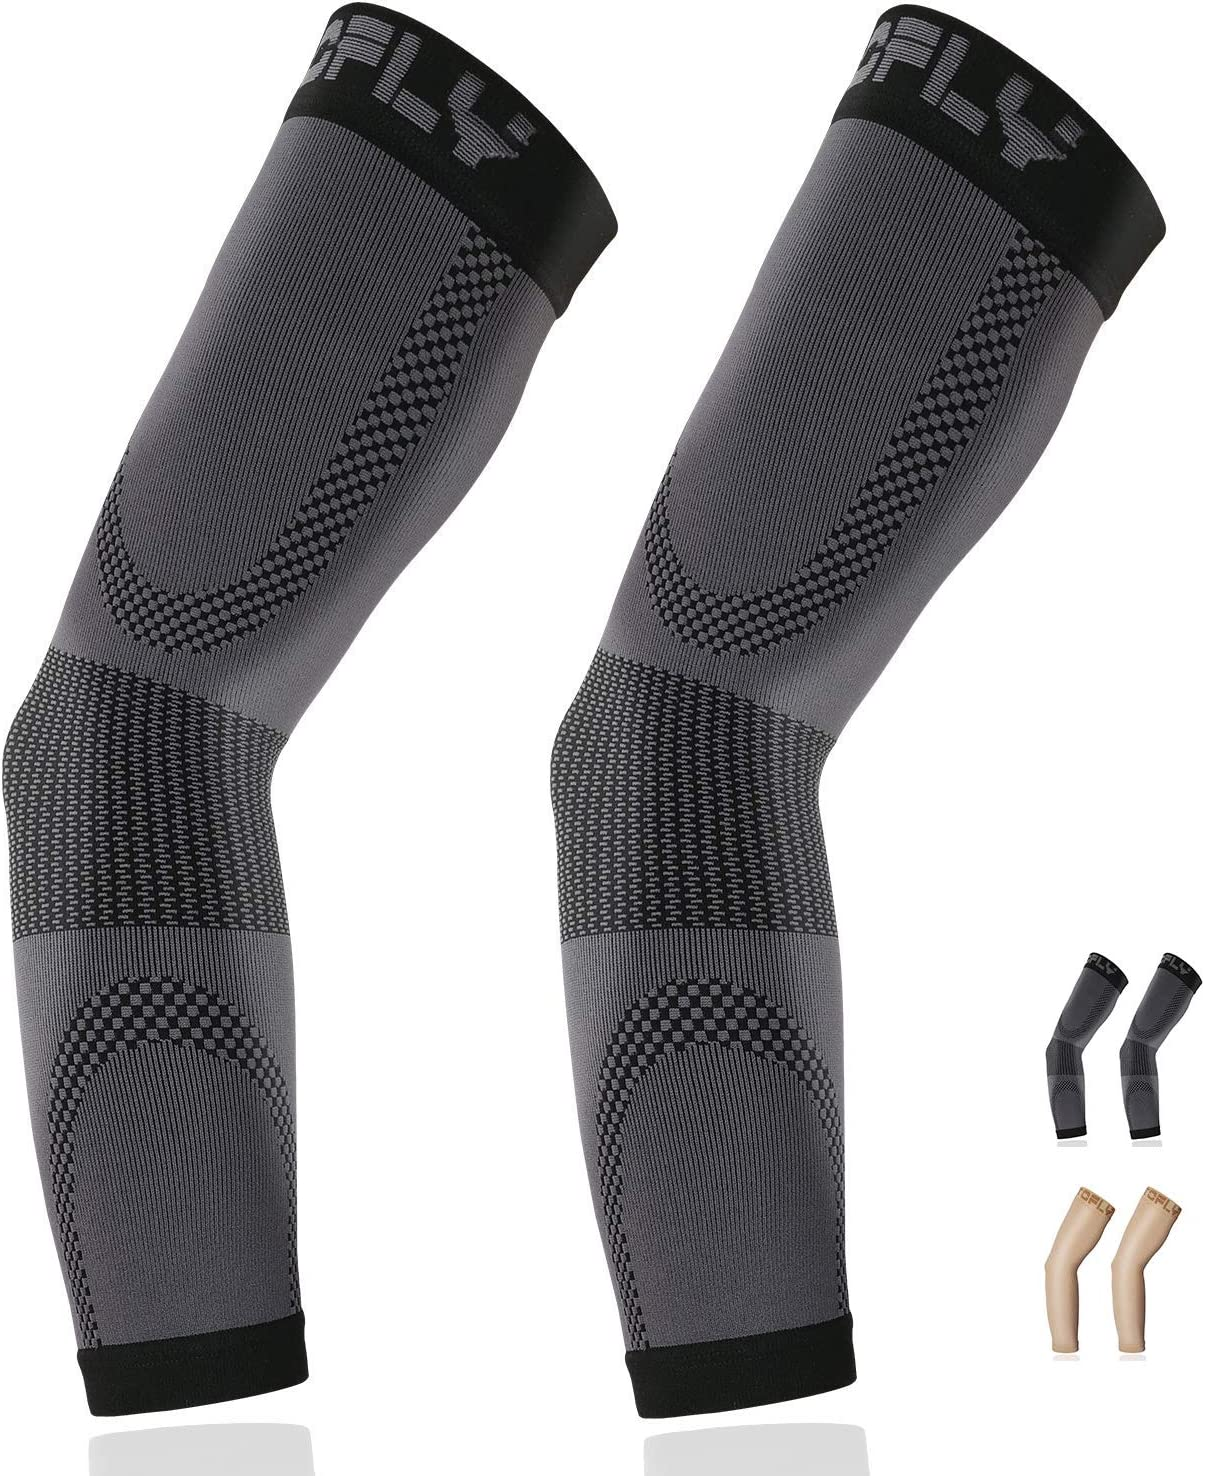 Compression Arm Sleeve 1 Genuine Fresno Mall Free Shipping Pair Graduated Unisex C 20-30mmHg for